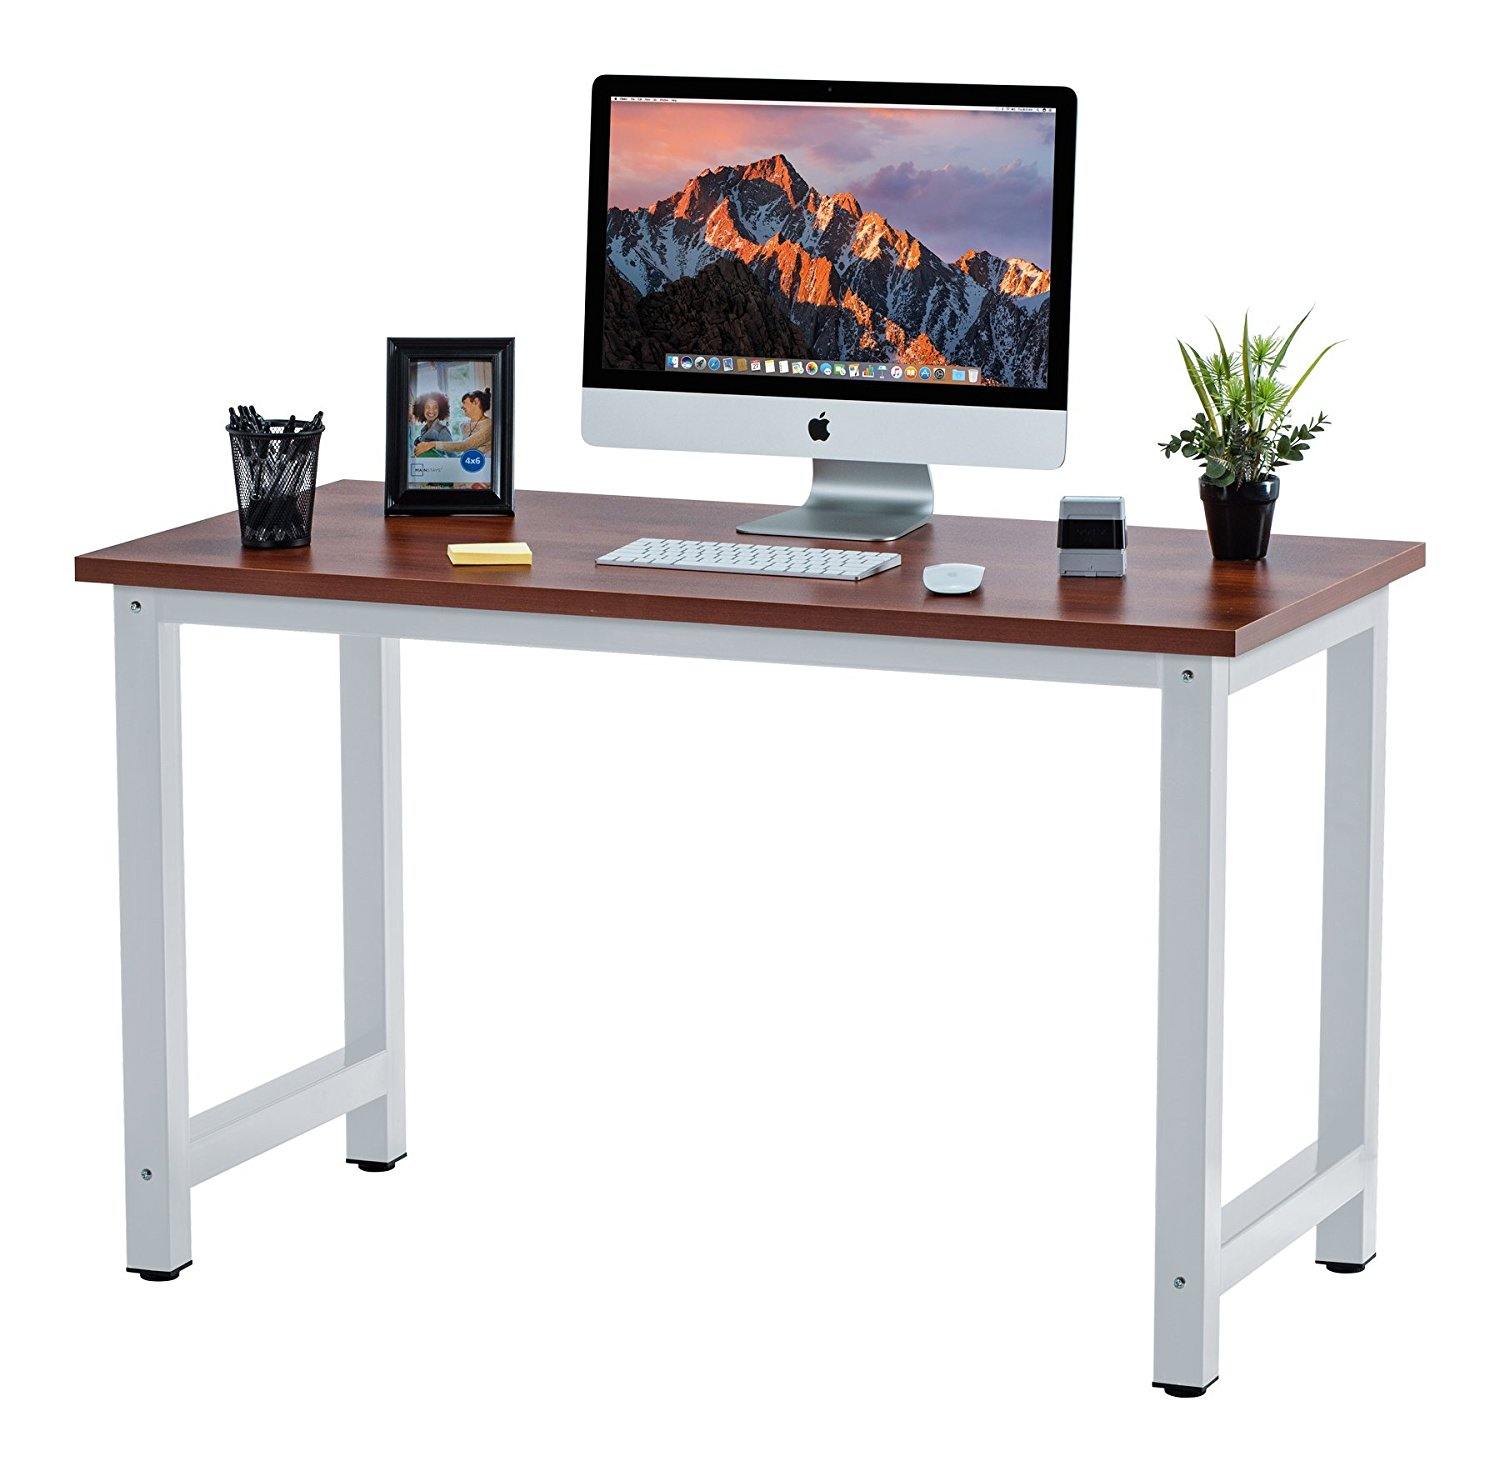 "Fineboard 47"" Stylish Home Office Computer Desk Writing Table Elegant & Modern Design, Teak/White"